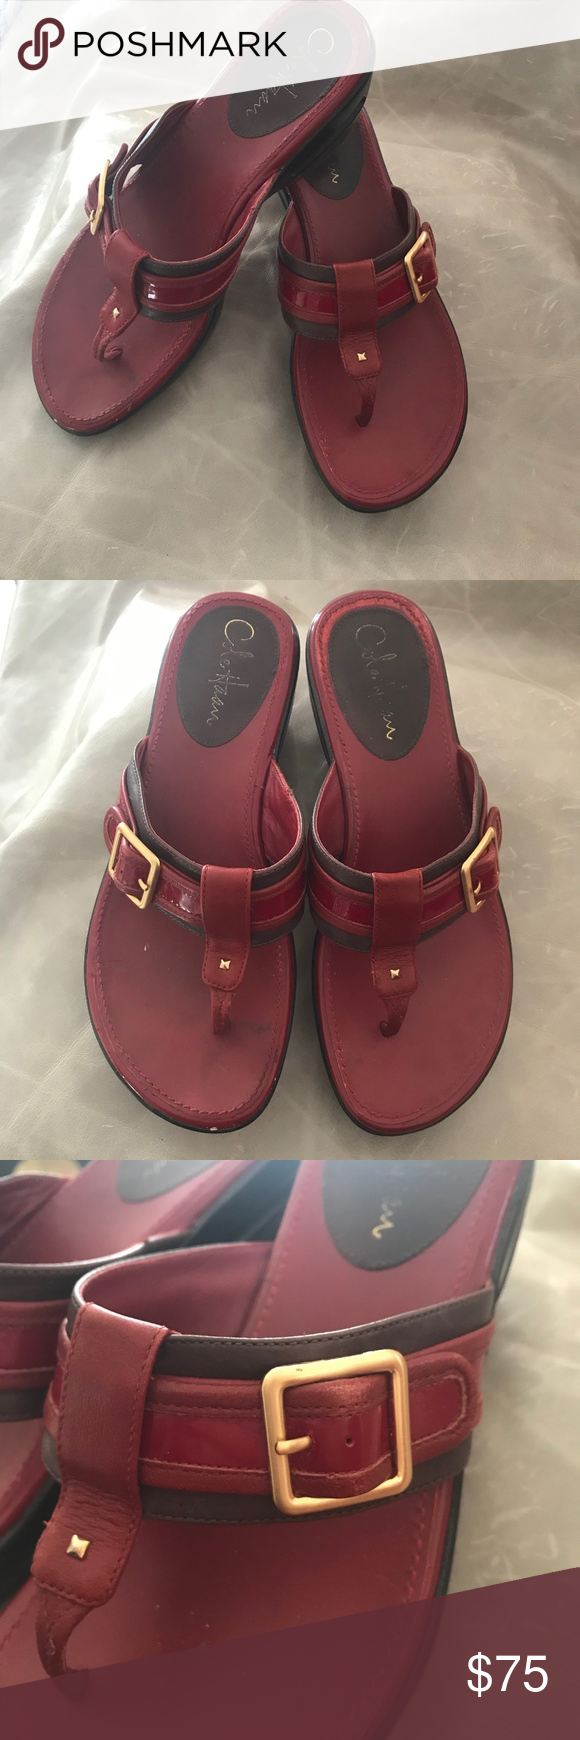 3dcff3bbf40 Cole Haan Red Maddy Wedge Sandals 8M Nike Air Cole Haan Maddy Tant style  100%